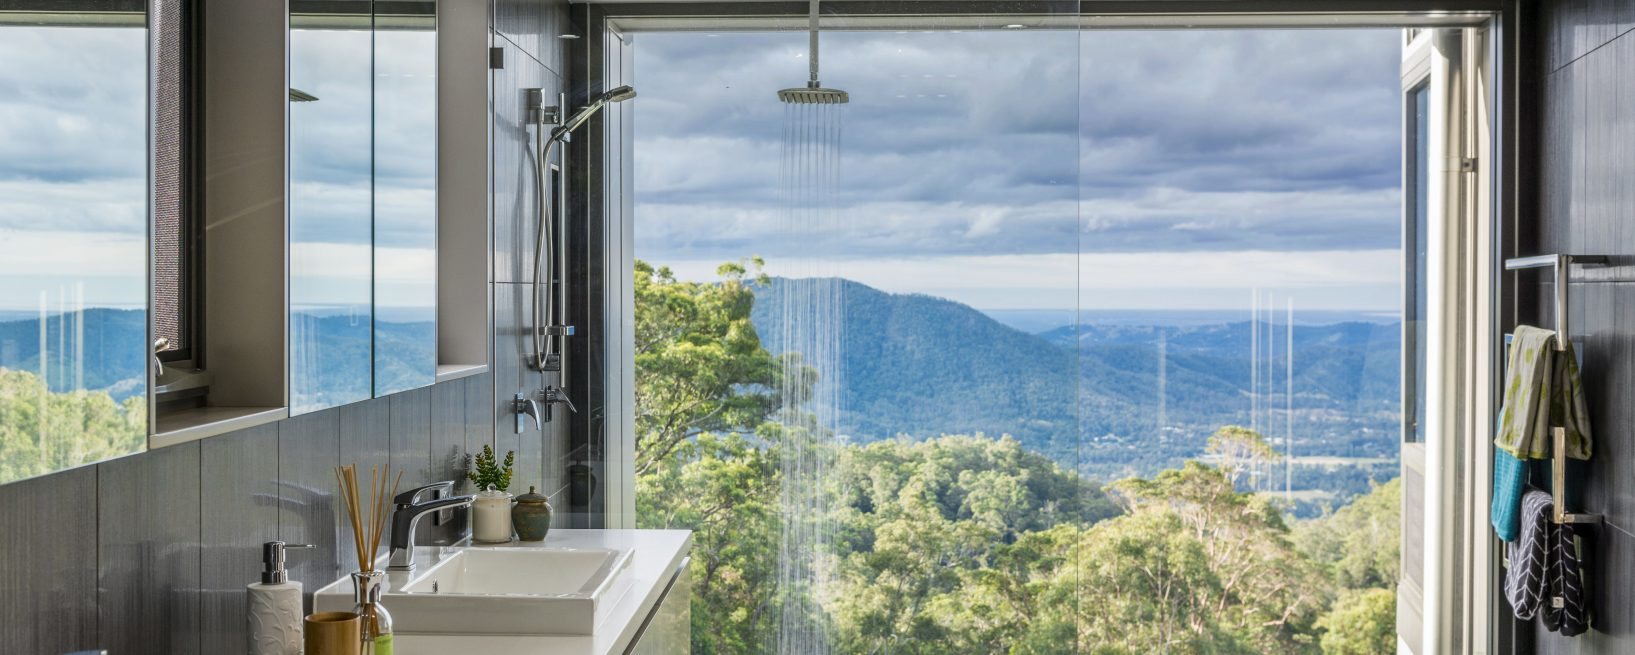 Luxury Bathroom Design , Mount Nebo , Brisbane , Australia